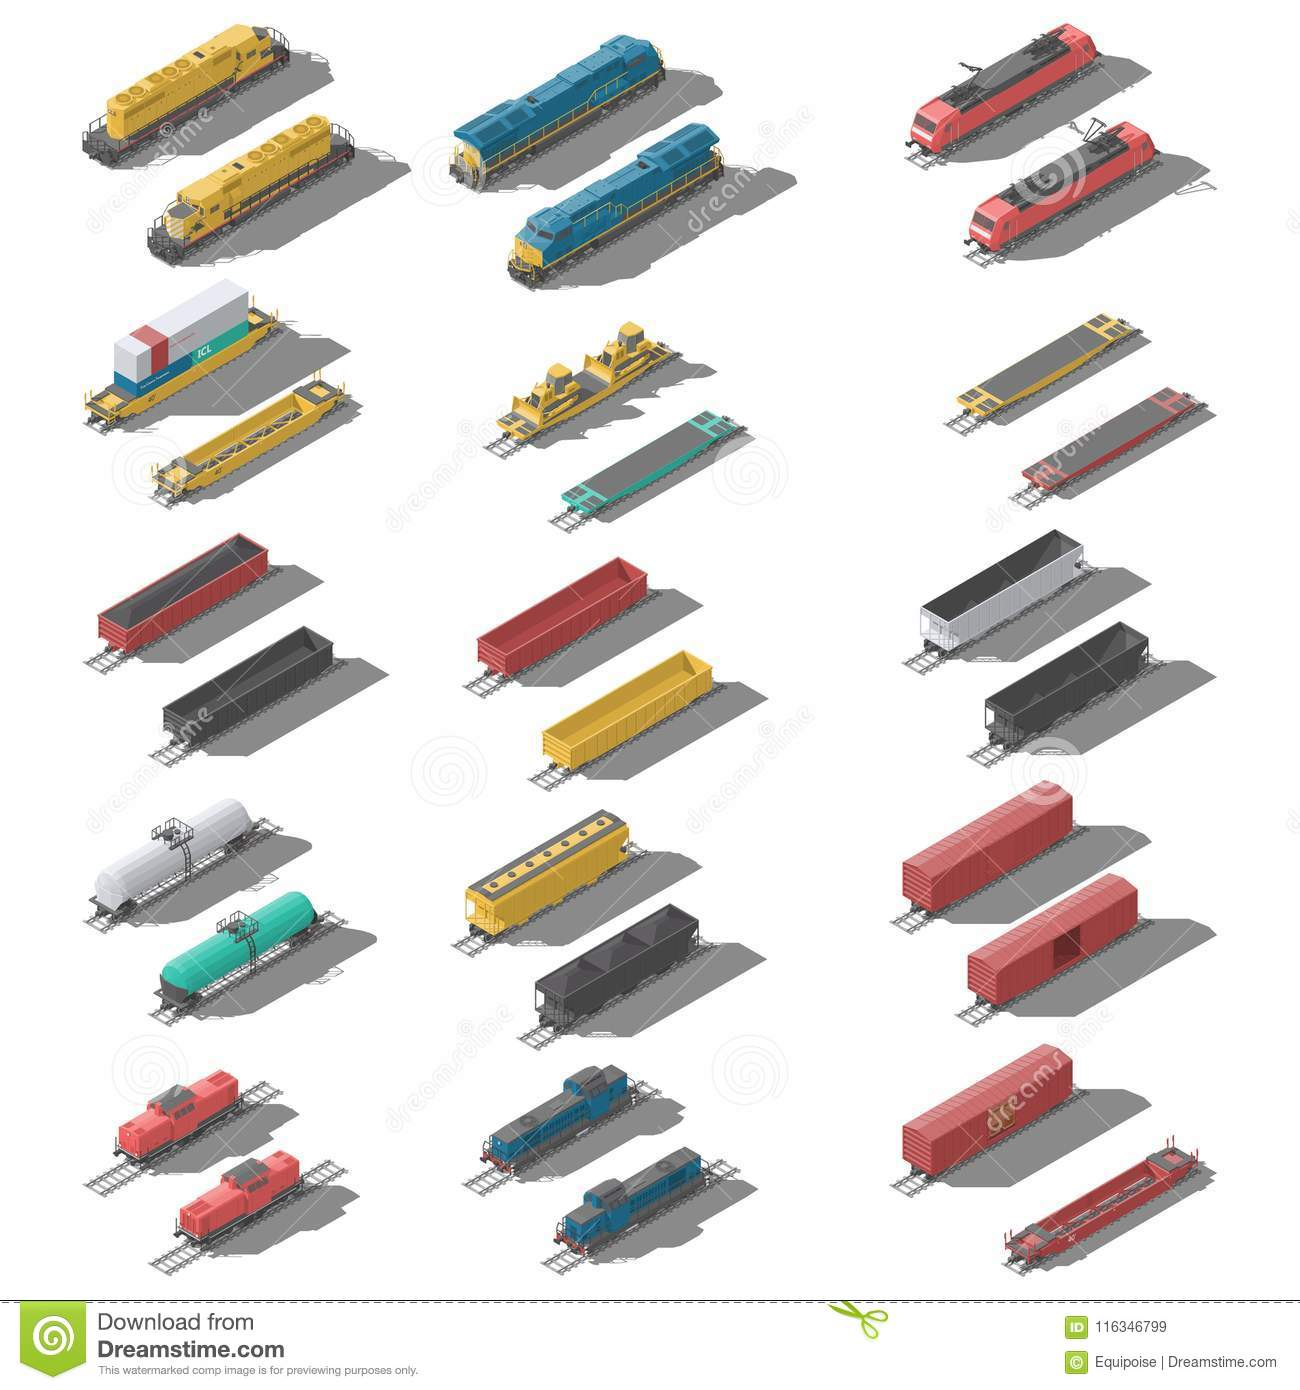 Freight railroad cars and locomotives isometric low poly icon set